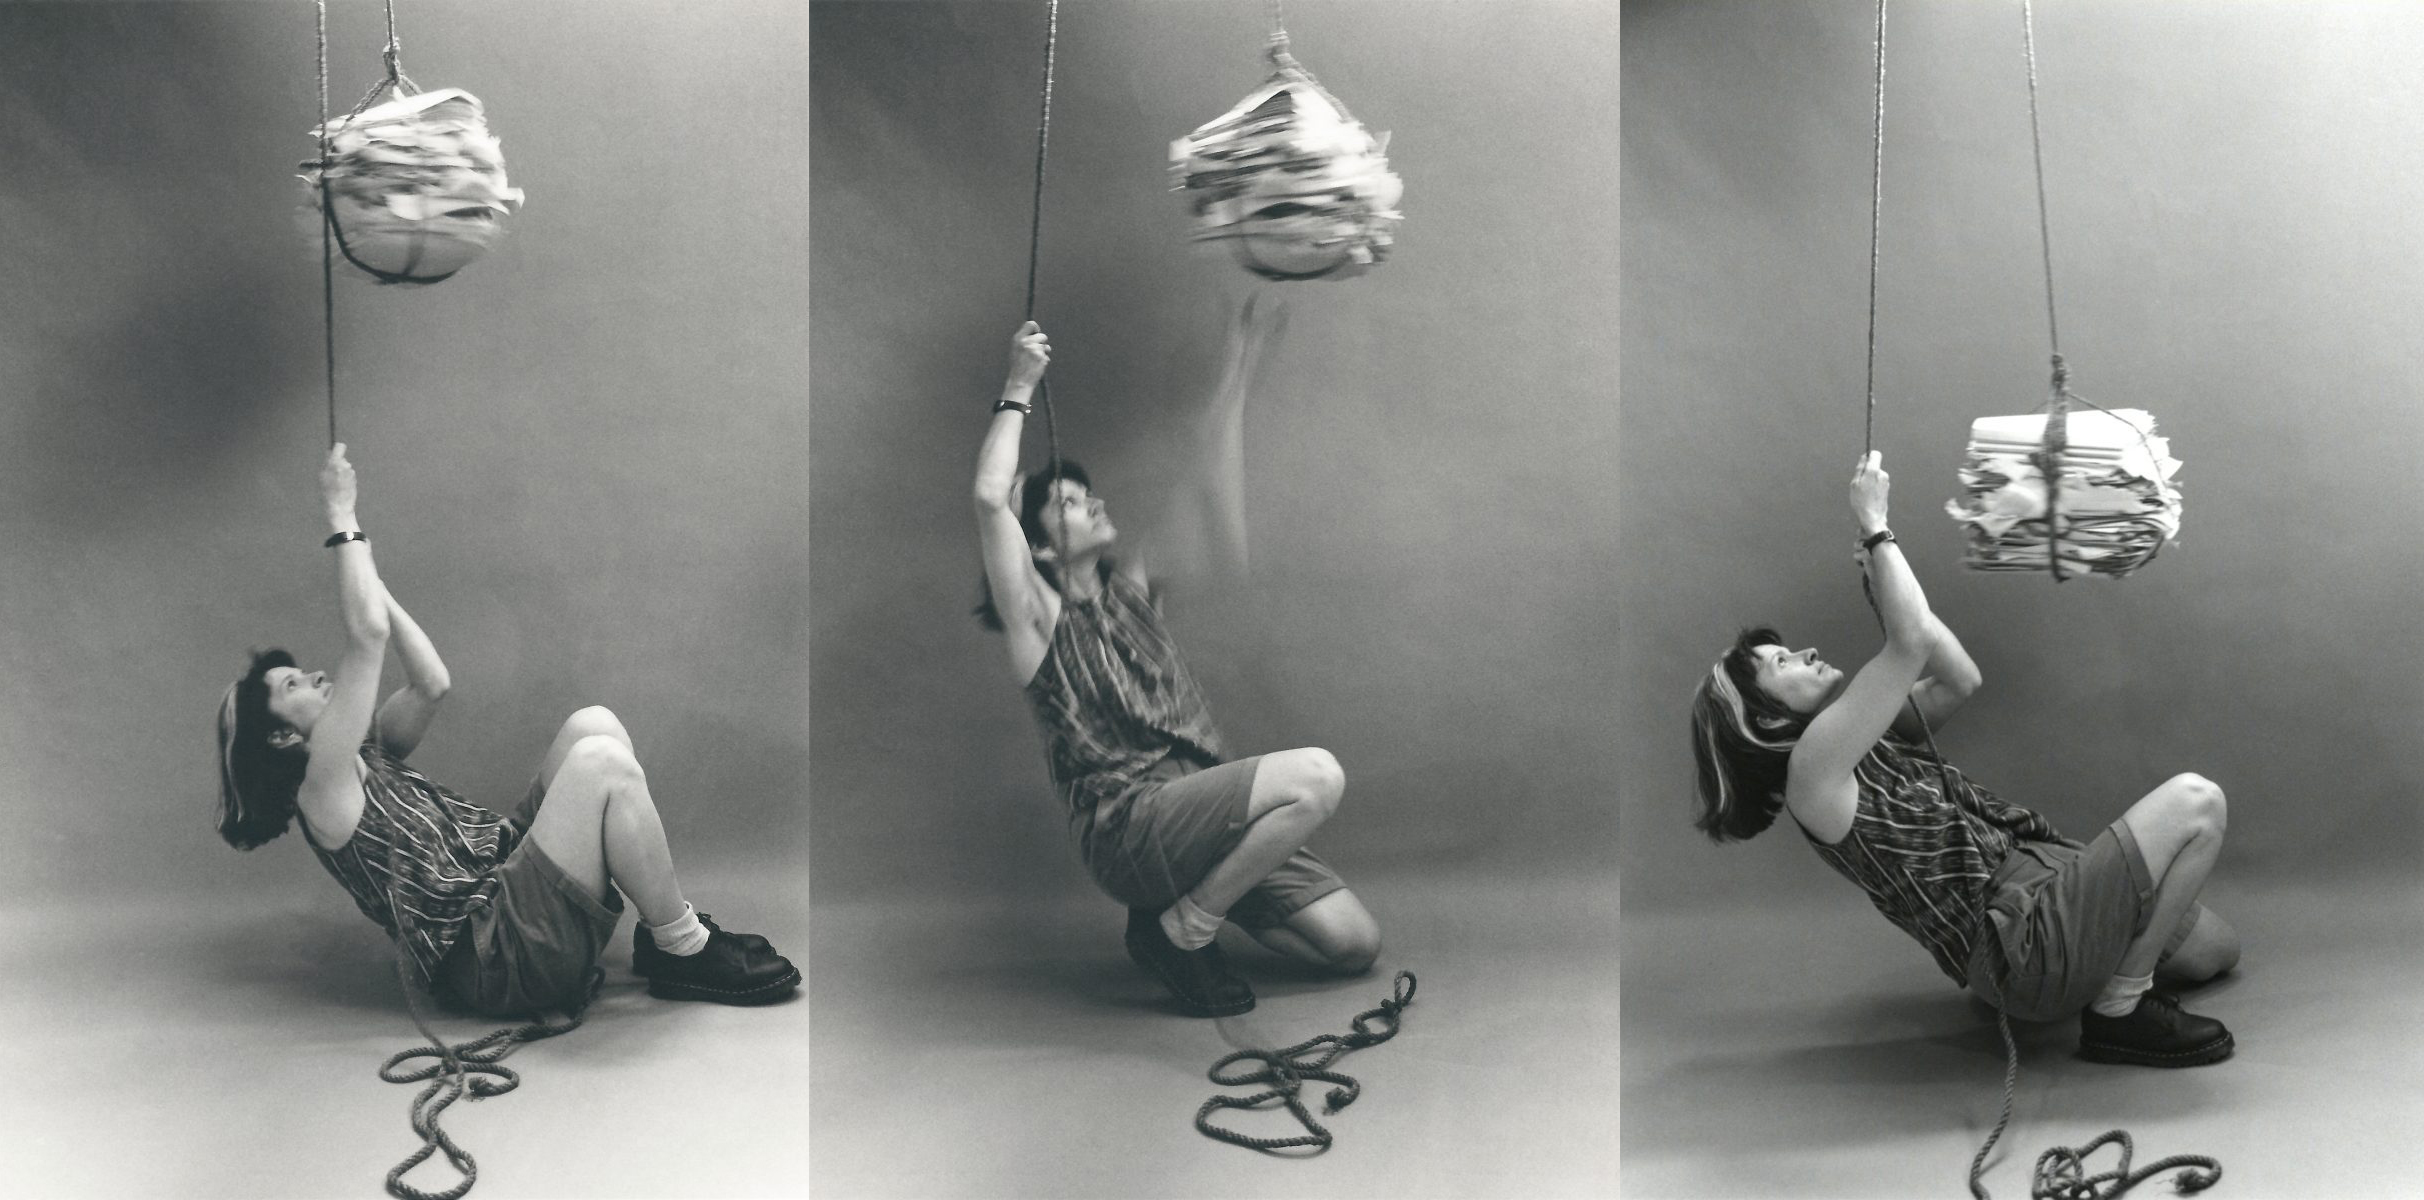 Self Portrait with Files (Pulley)